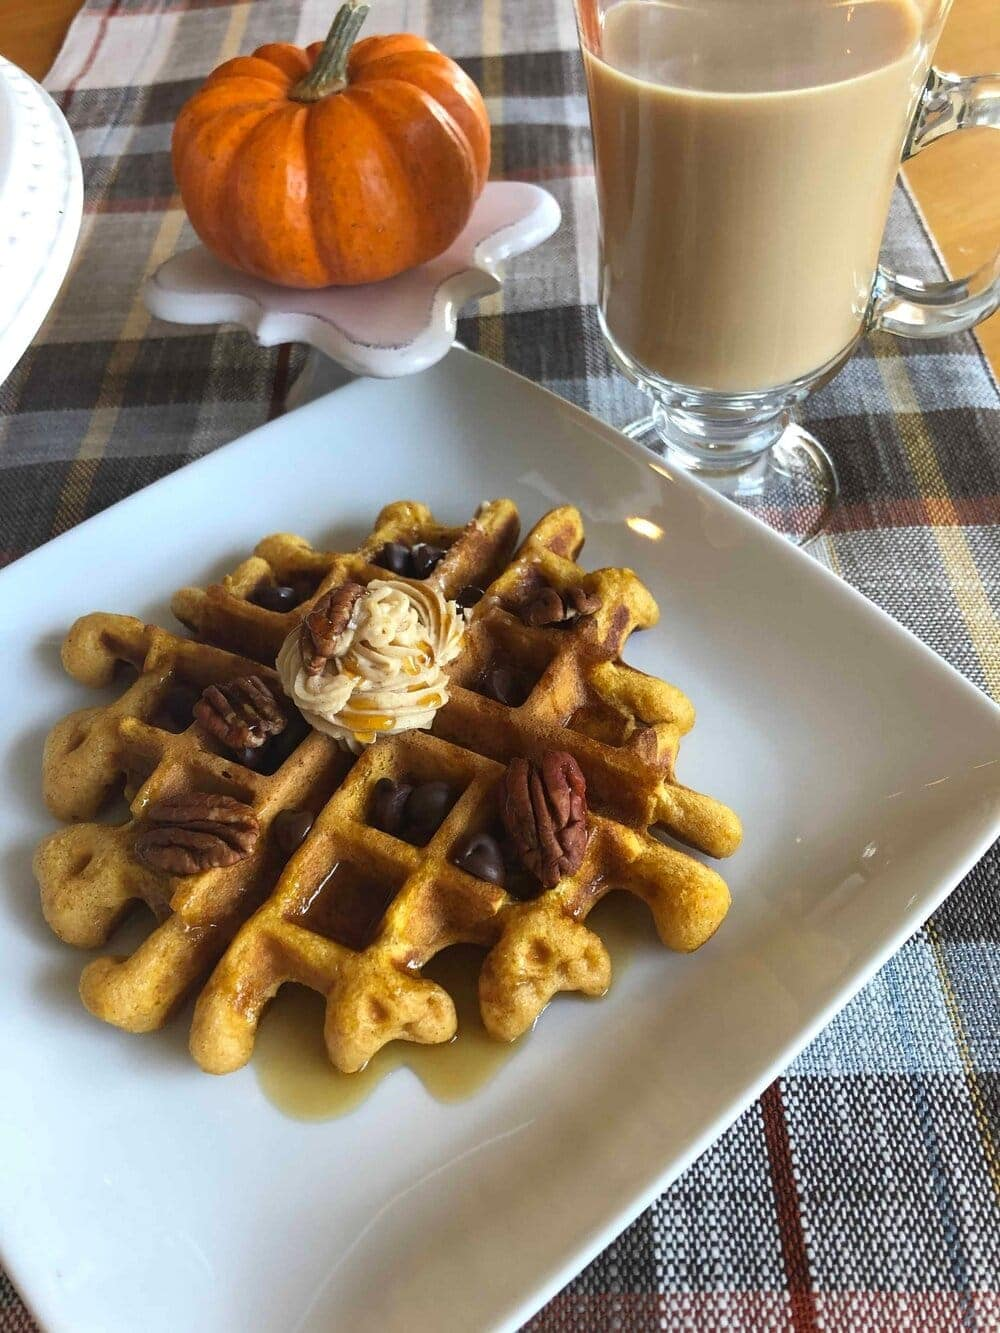 Missouri Girl Blog. Pumpkin Buttermilk Waffles with maple cinnamon butter. So amazing! Imagine a spiced pumpkin waffles with melty maple butter, chocolate, and pecans on top. So good and makes the perfect addition to any Holiday, Fall, or Winter breakfast, #pumpkinbuttermilkwaffles #waffles #holidaybreakfast #breakfast #Christmasbreakfast